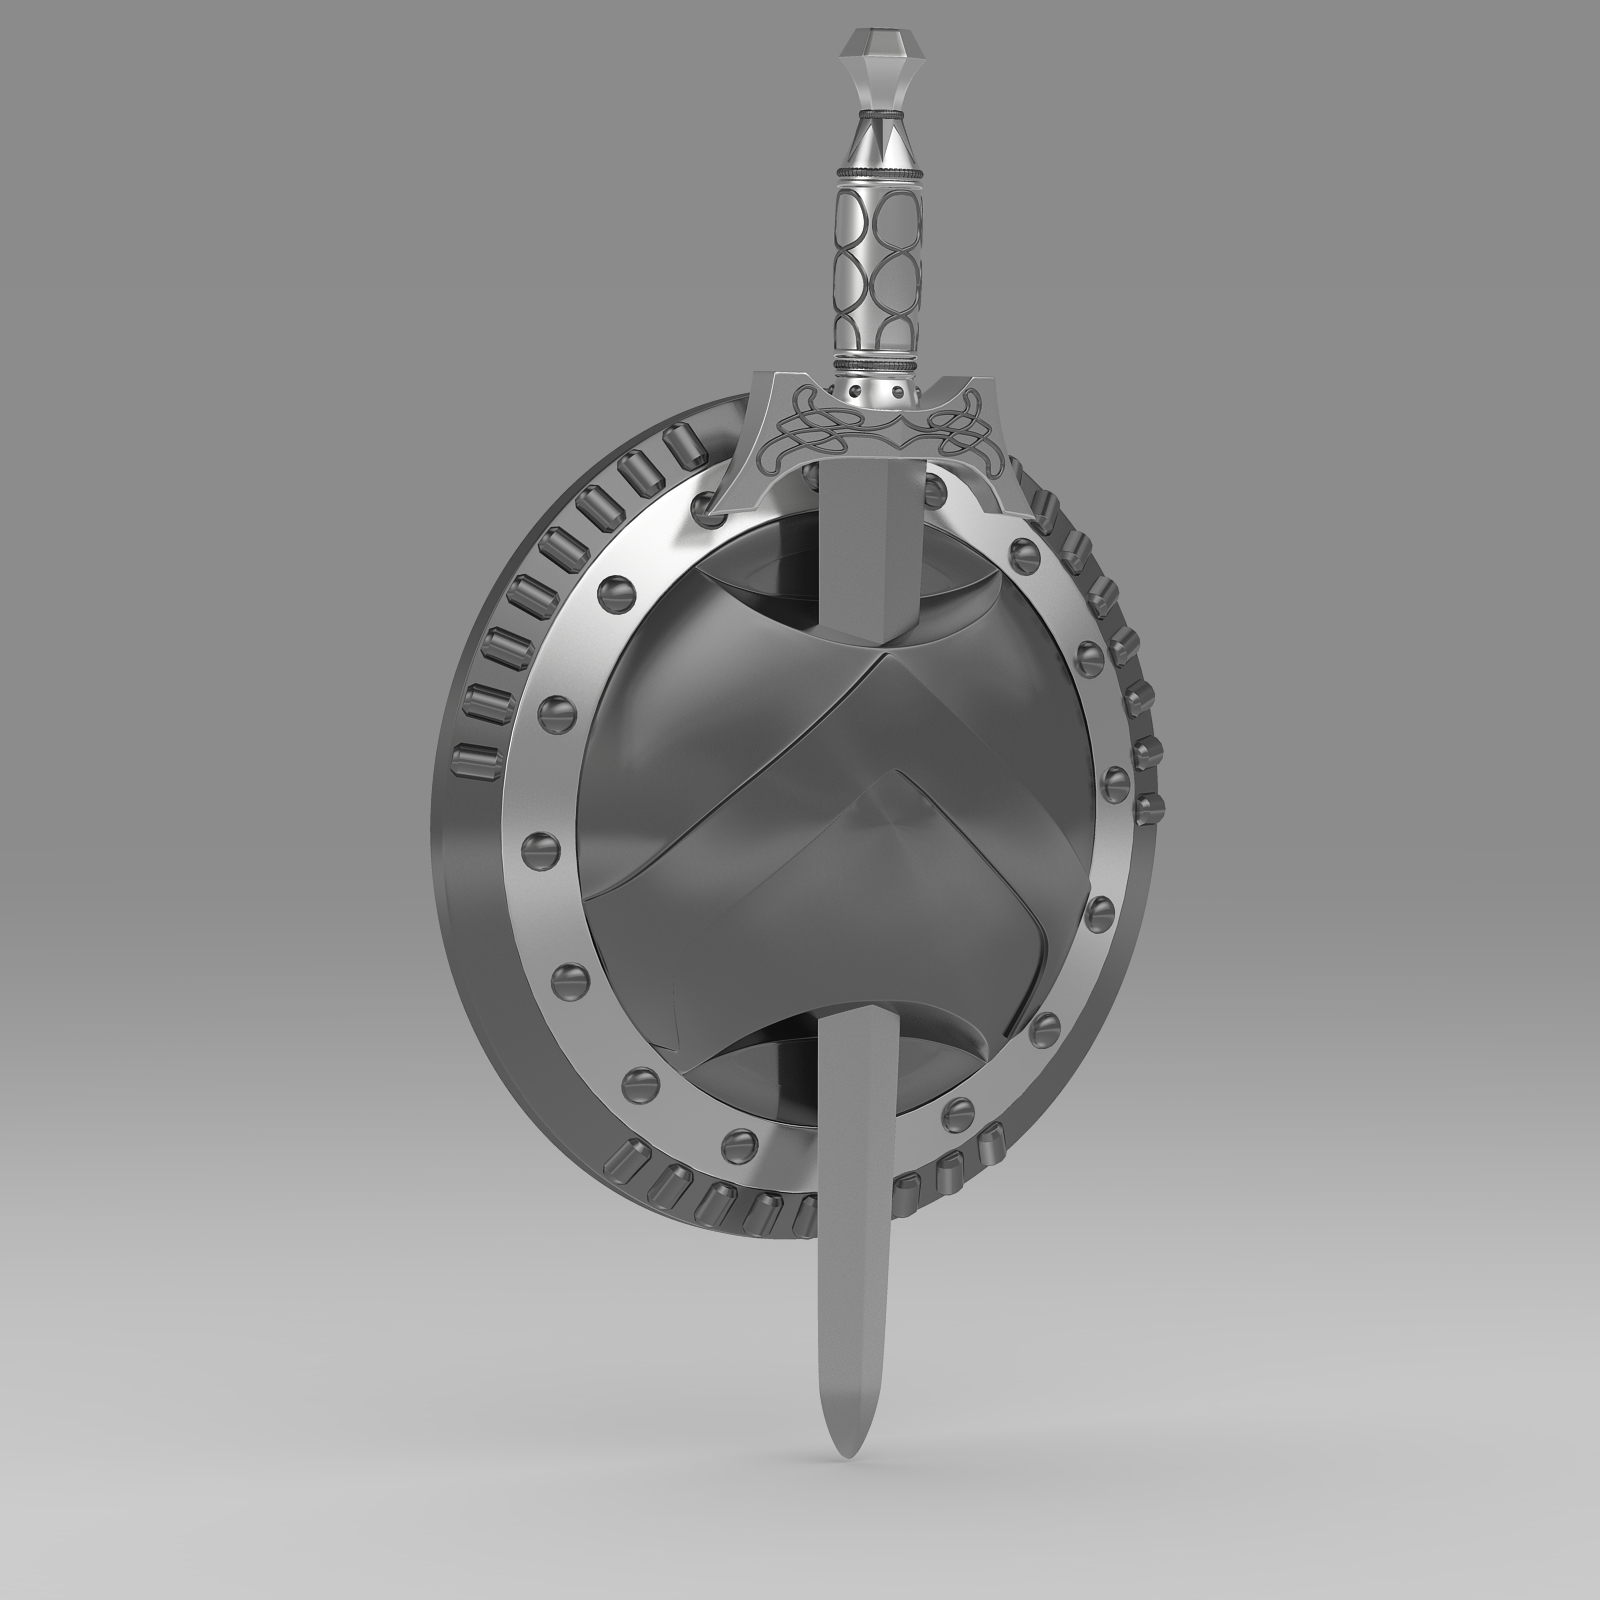 shield and sword v1 3d model 3ds fbx c4d lwo ma mb hrc xsi  obj 221427